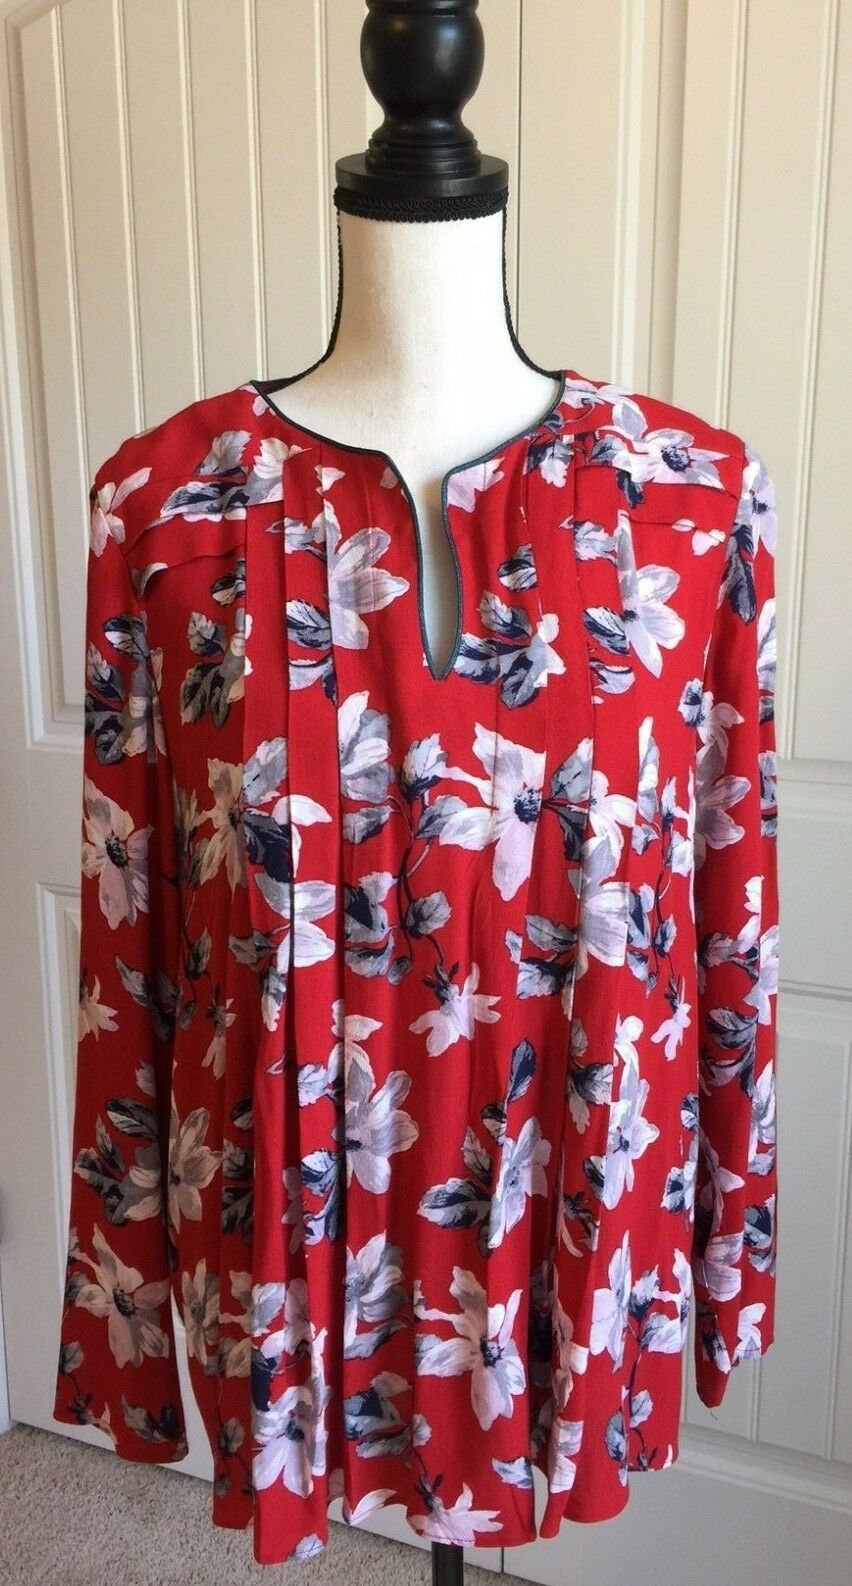 Joules Magda Red Floral Pleated Blouse - US 10